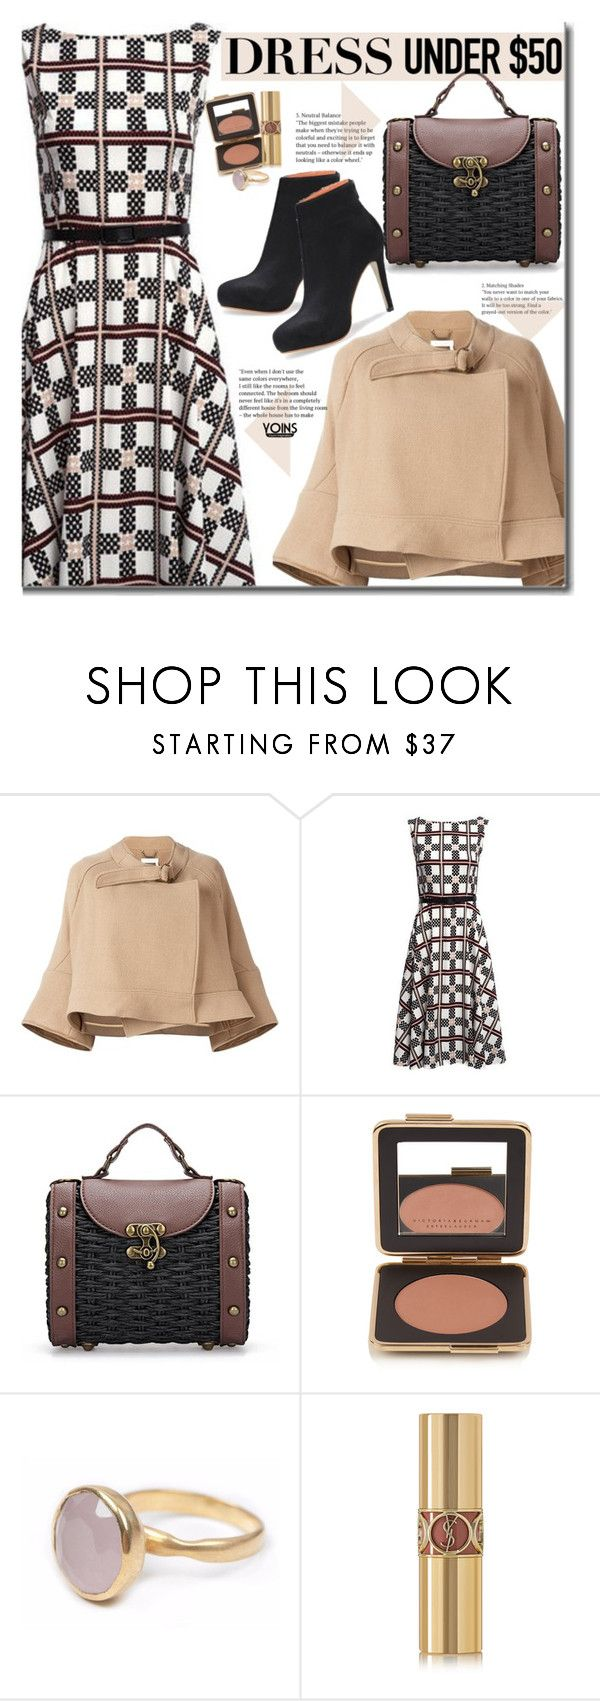 """Yoins Dress Under $50"" by beebeely-look ❤ liked on Polyvore featuring Chloé, Estée Lauder, Bohemia, Yves Saint Laurent, cape, fallfashion, camelcoat, yoins and Dressunder50"